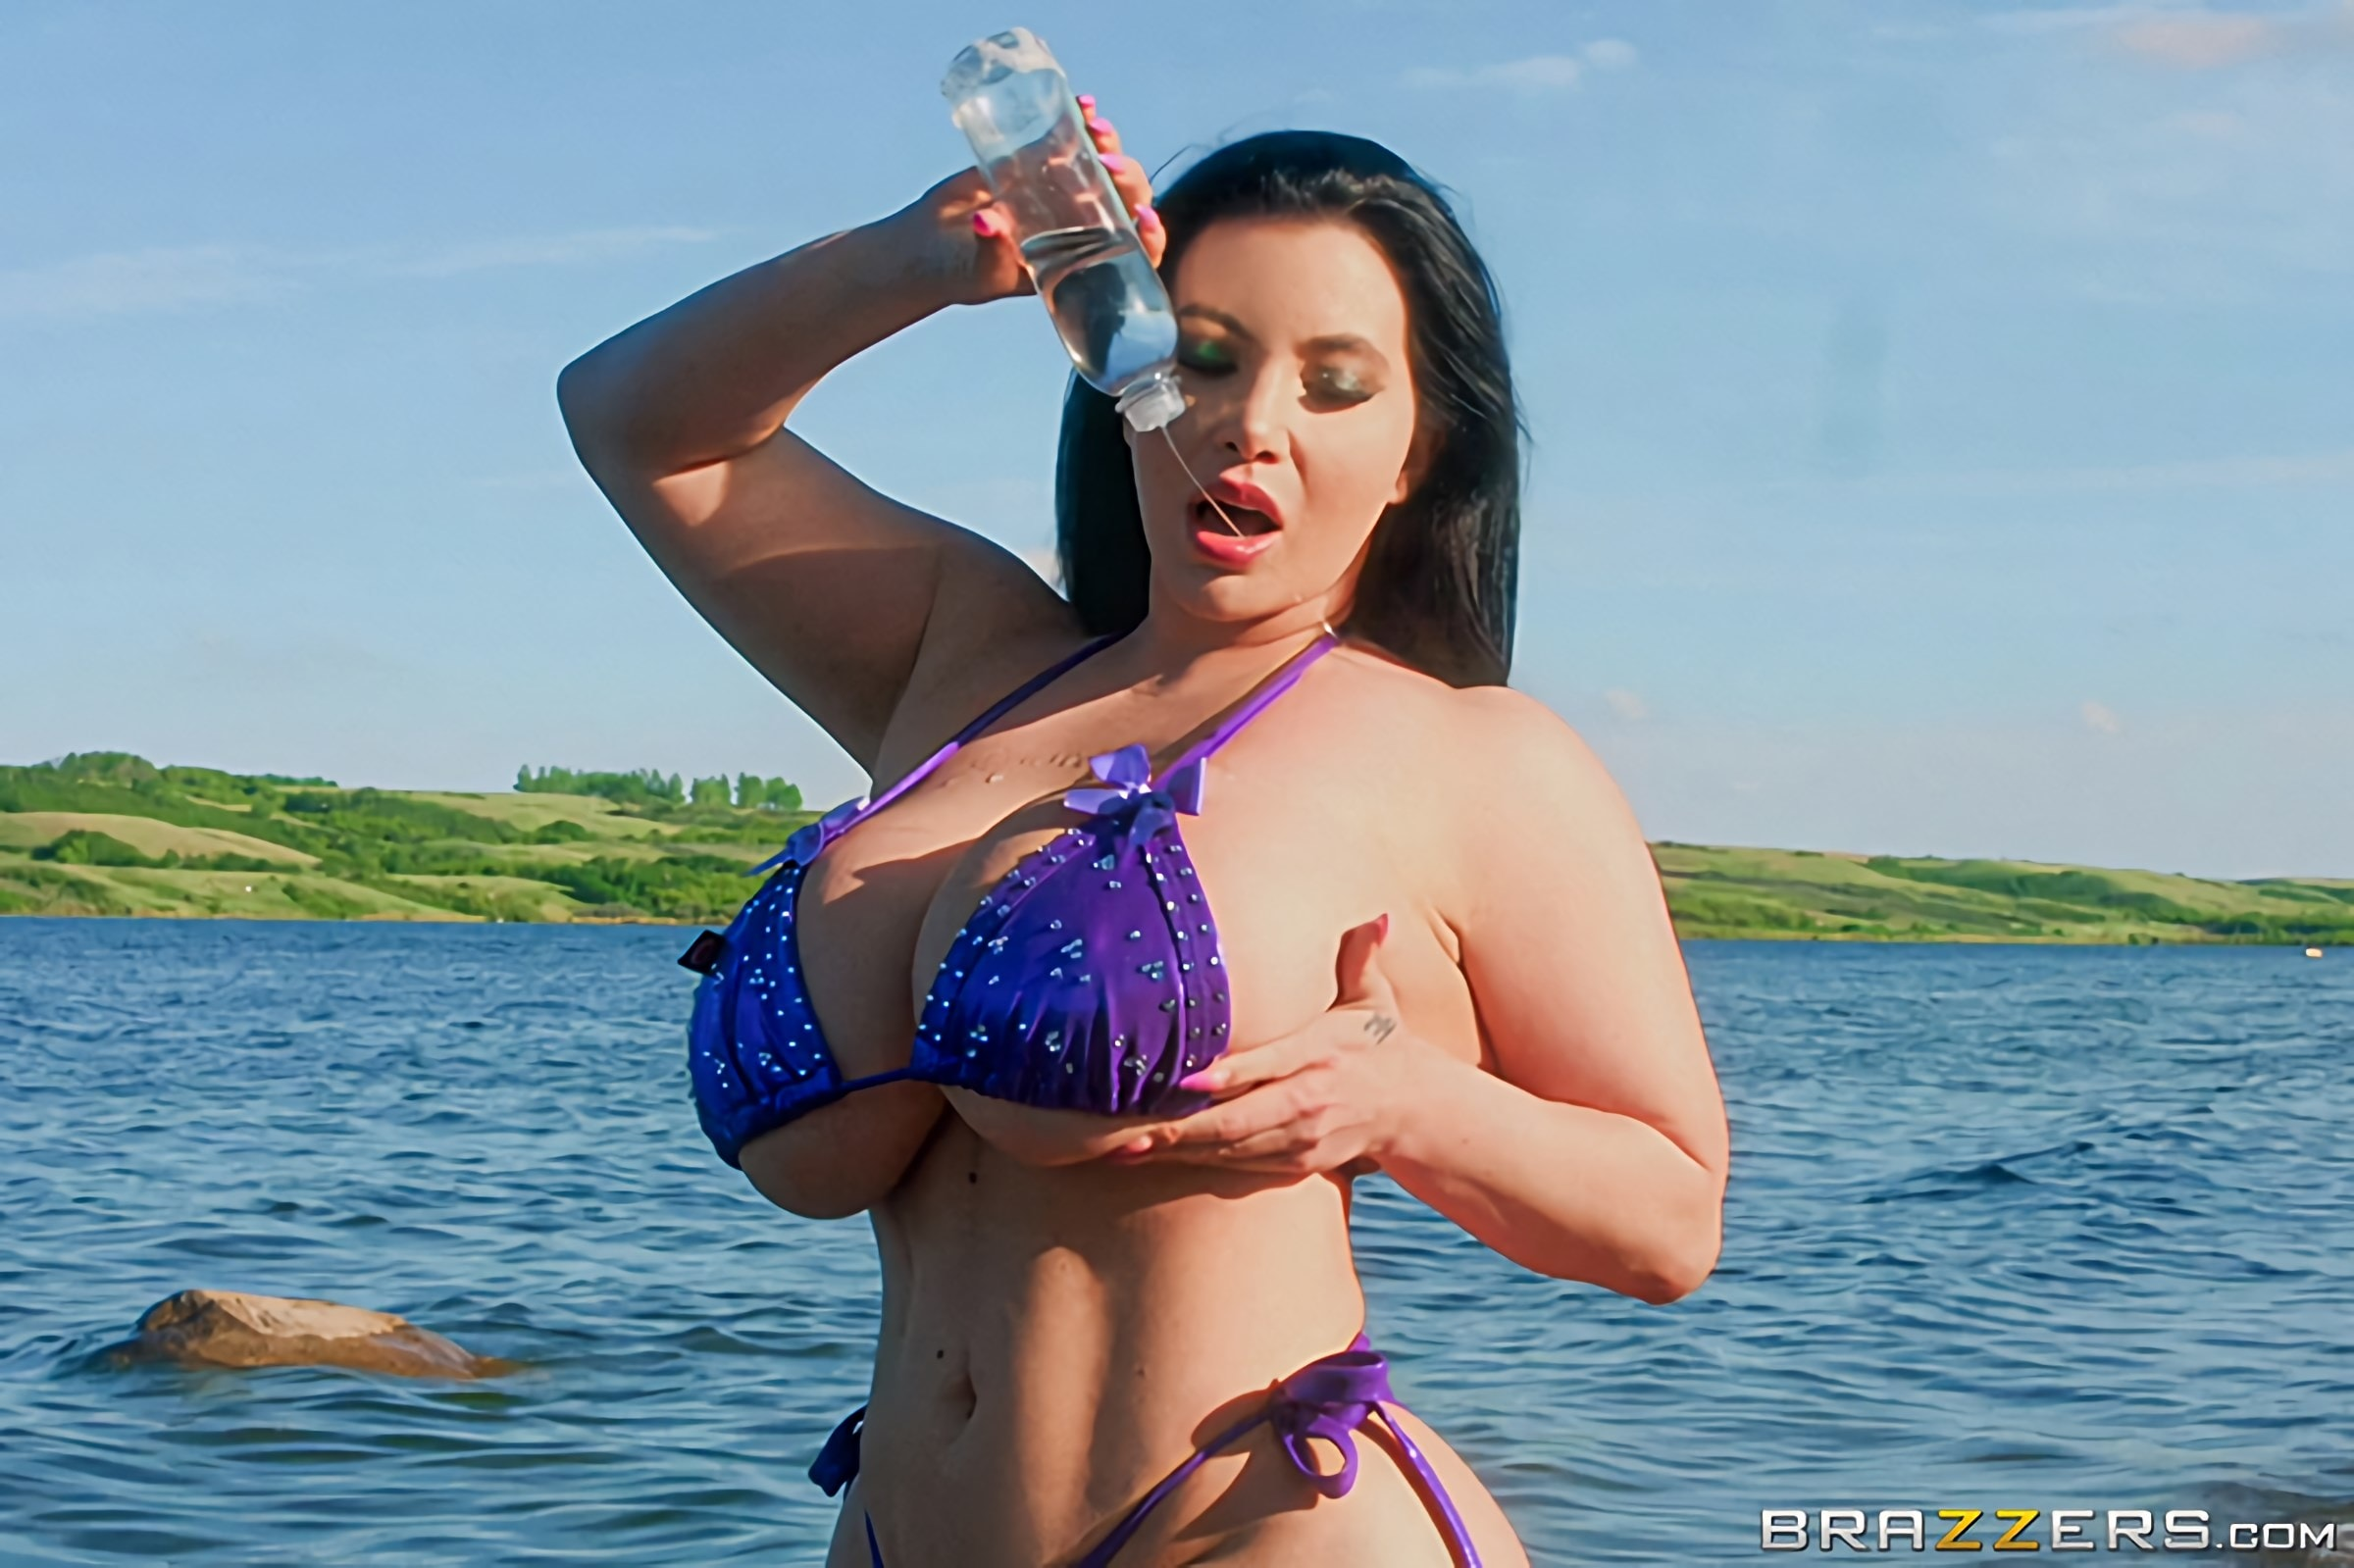 Korina Kova - Korina's Hot Fun In The Sun | Picture (1)